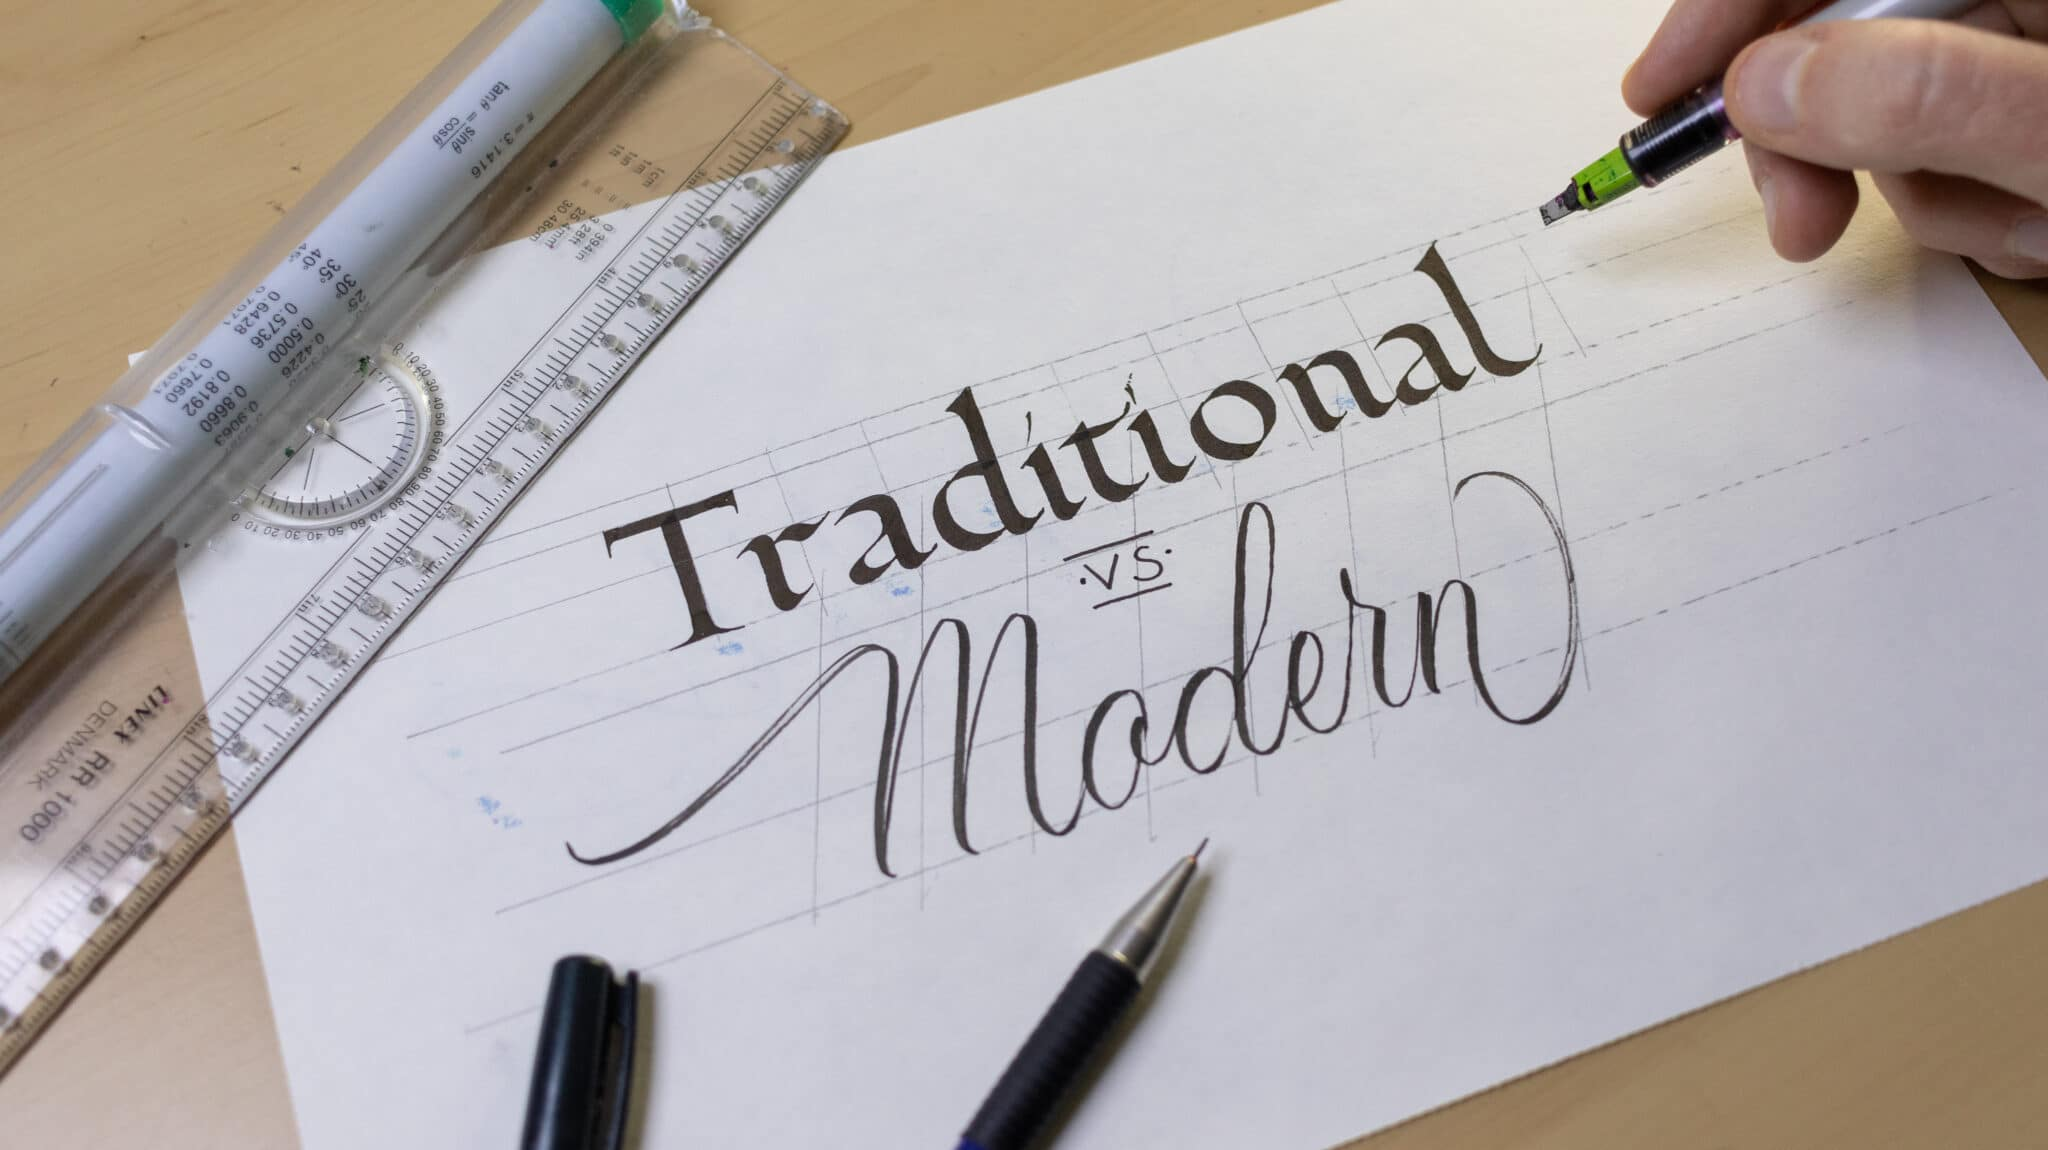 How To Make Calligraphy Guidelines Image 12 - Lettering Daily